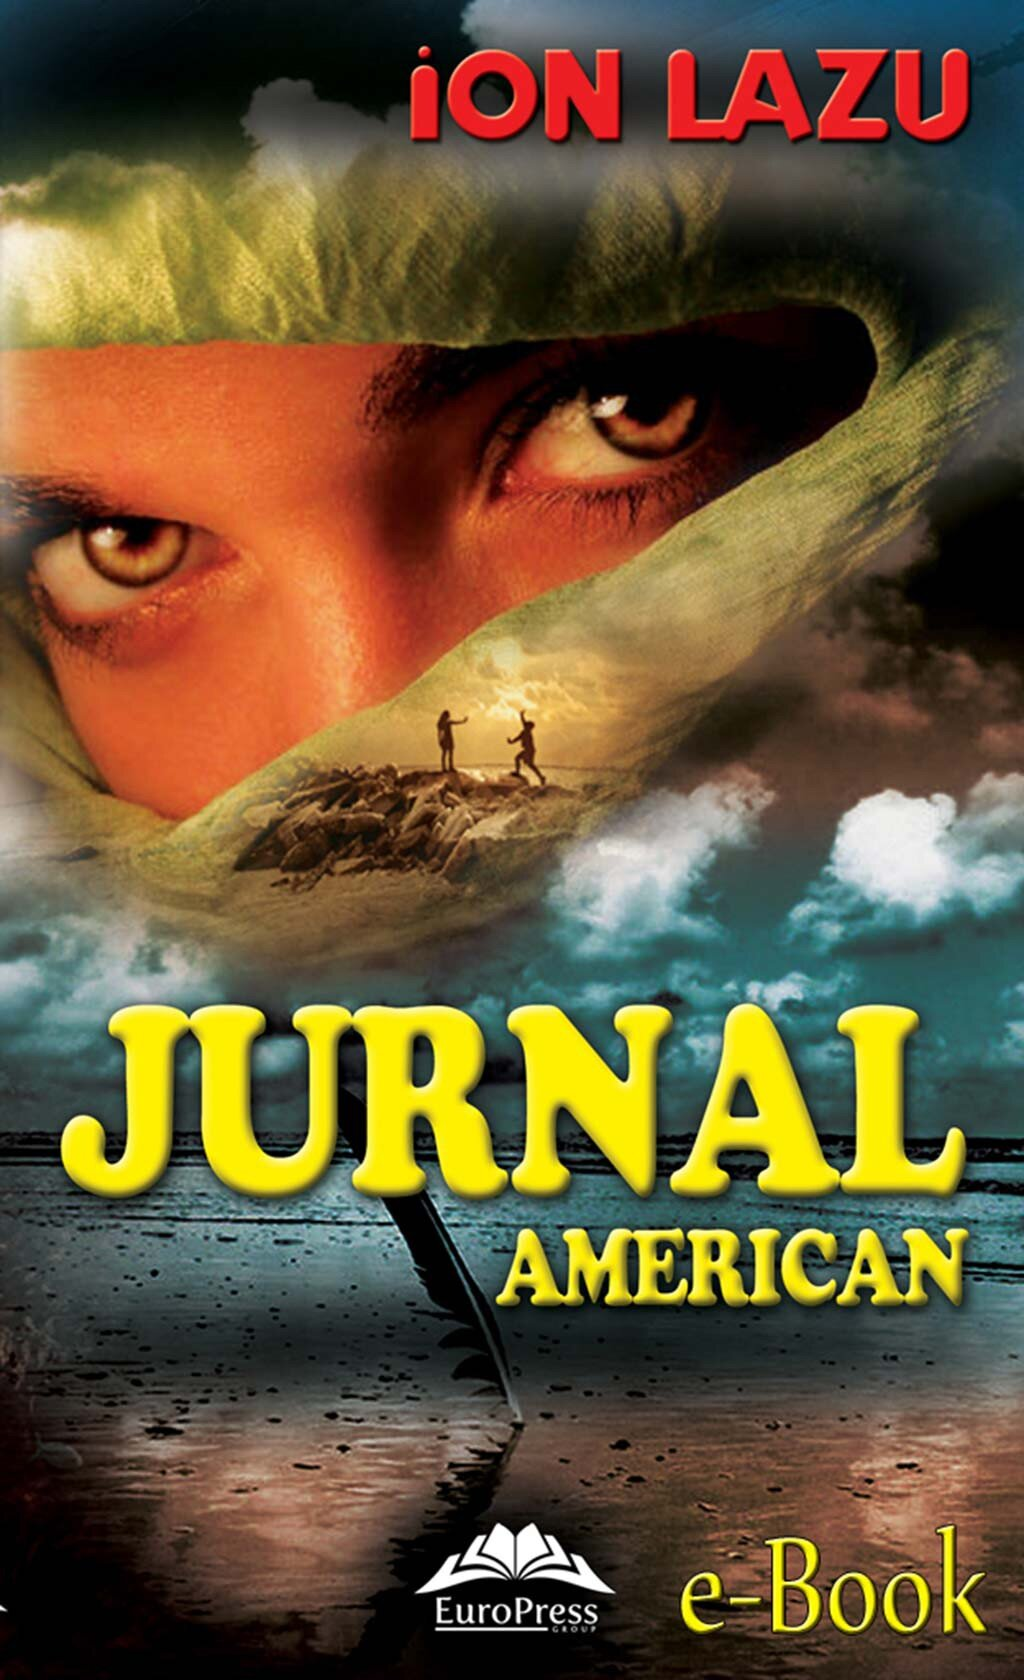 Jurnal american (eBook)